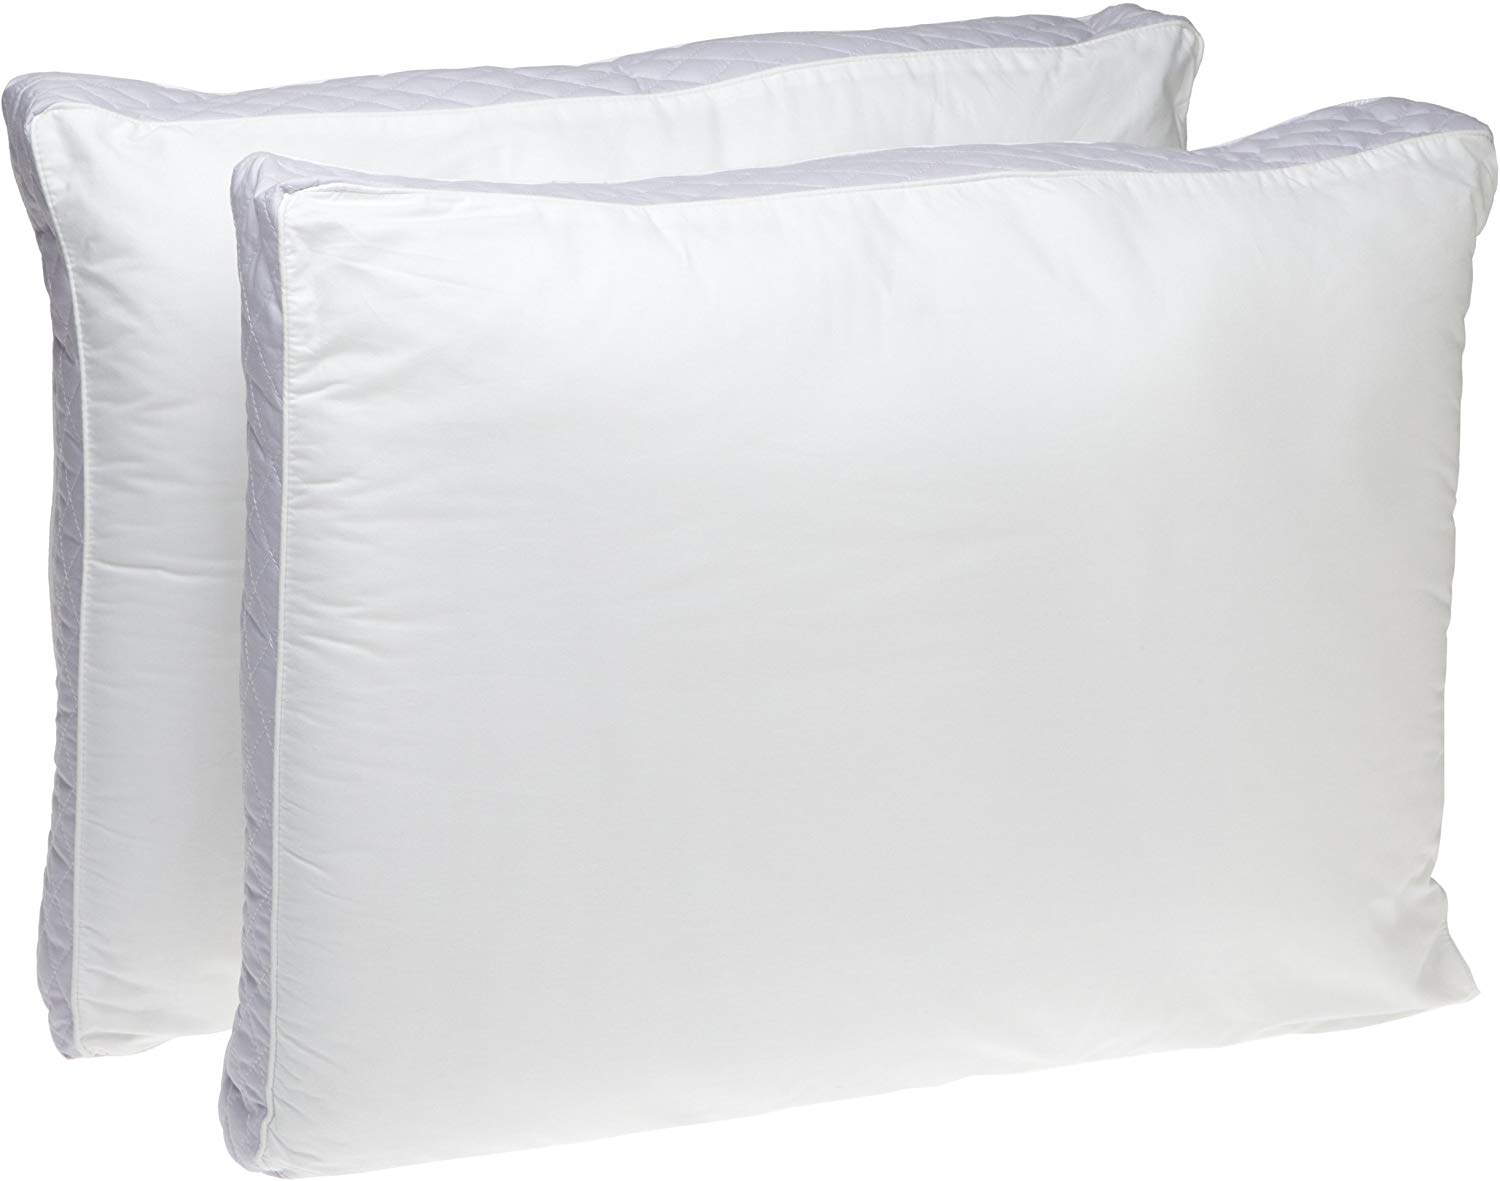 Perfect Fit best firm pillows review by www.dailysleep.org